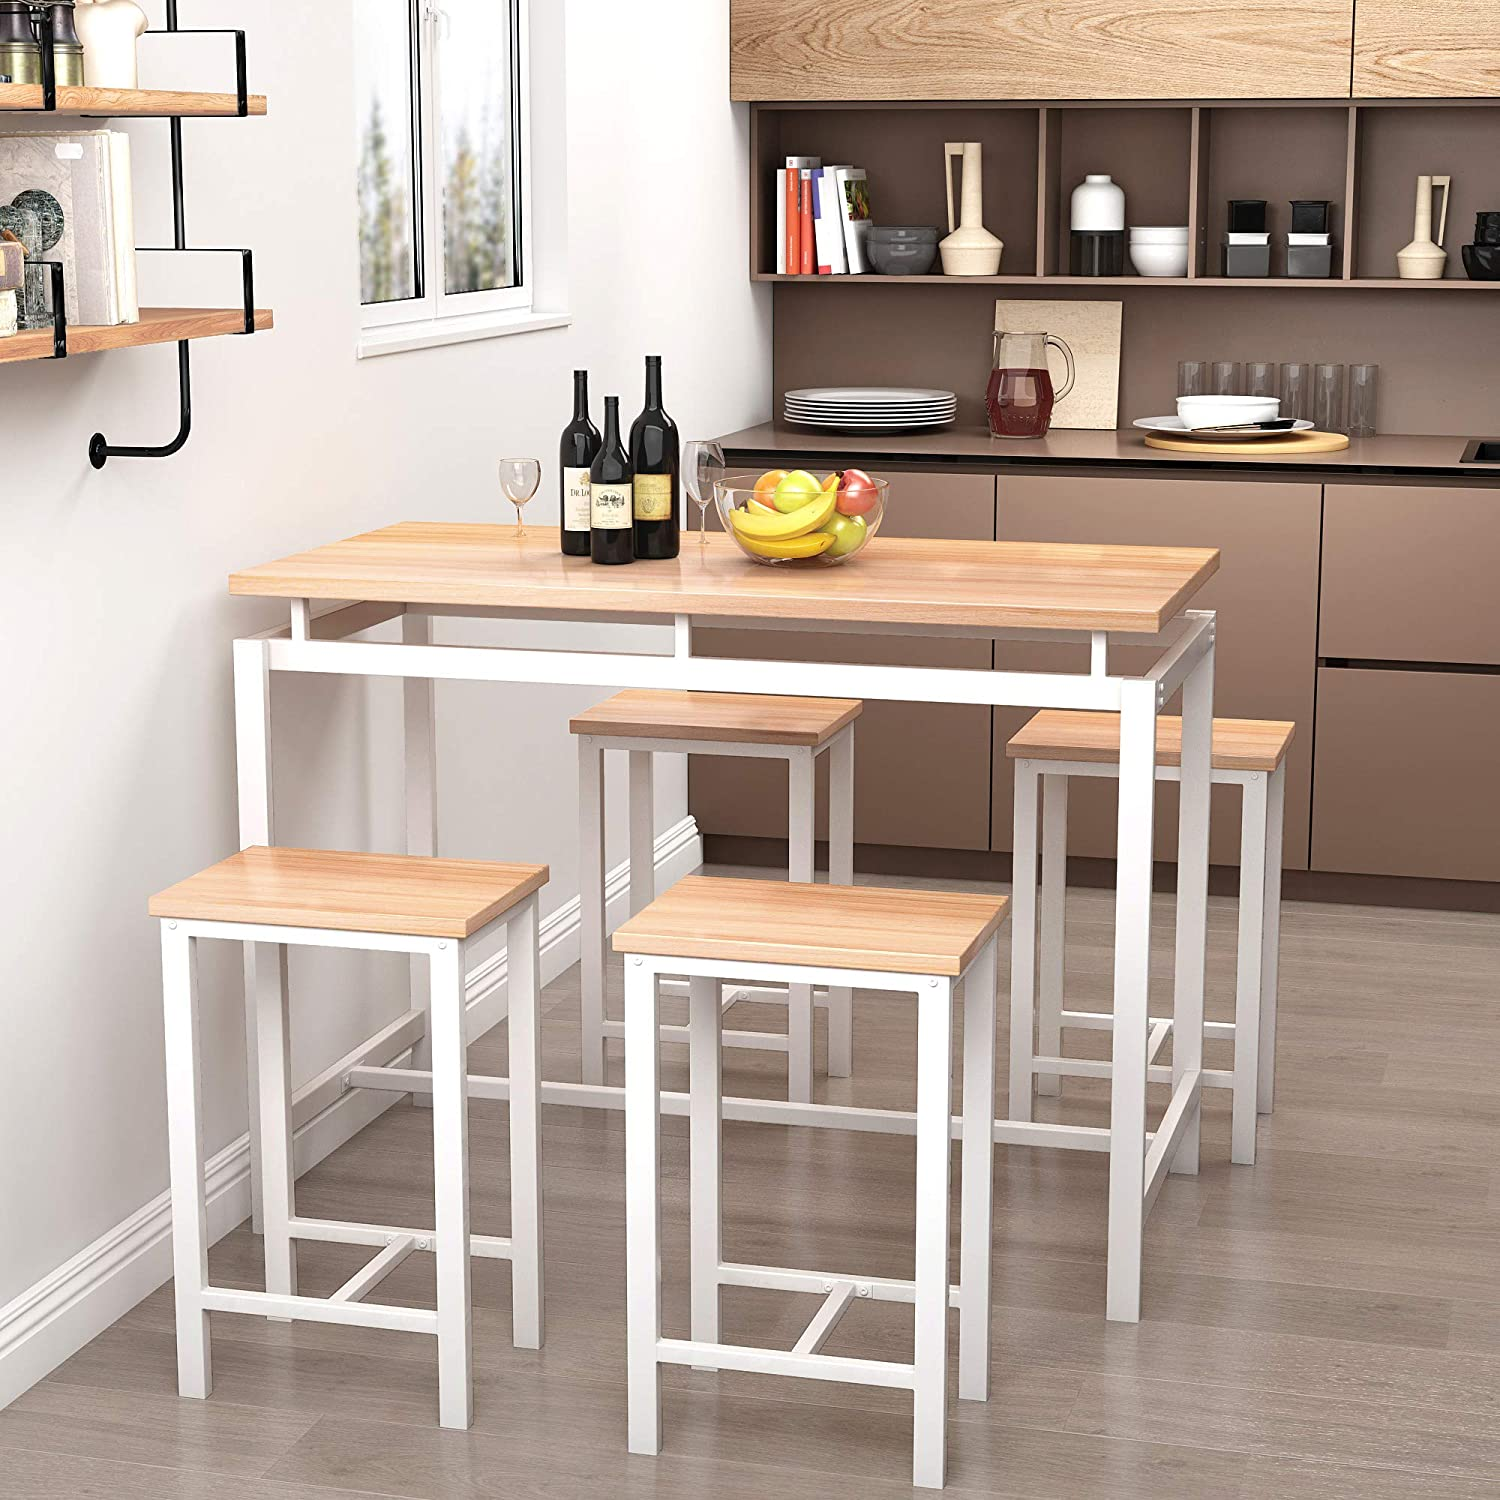 DKLGG Dining Room Set 5-Piece, Modern Small Kitchen Table with 4